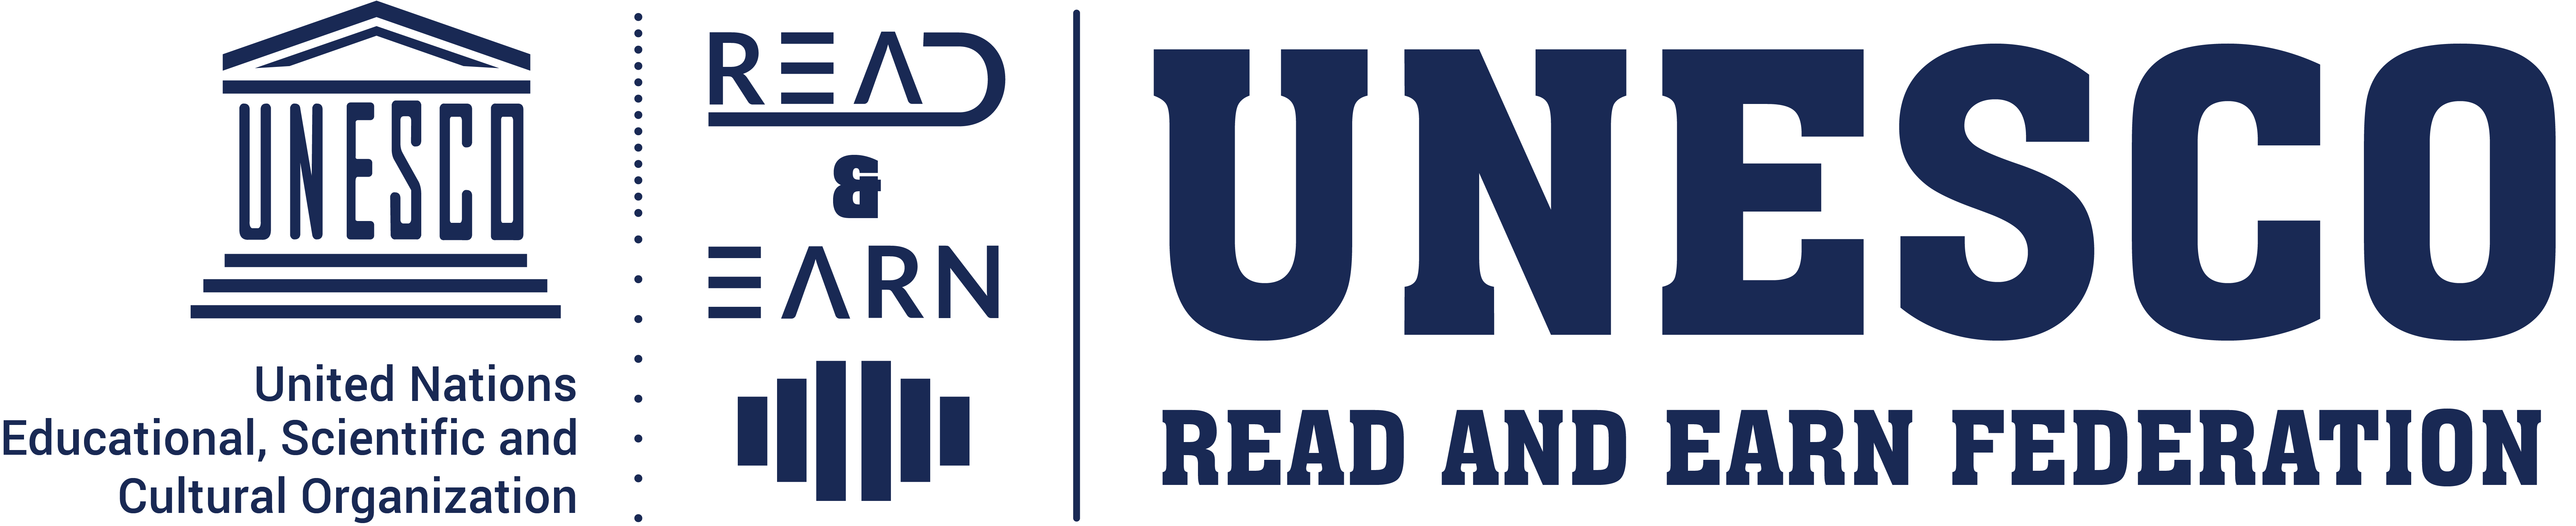 UNESCO Read and Earn Federation Official Website